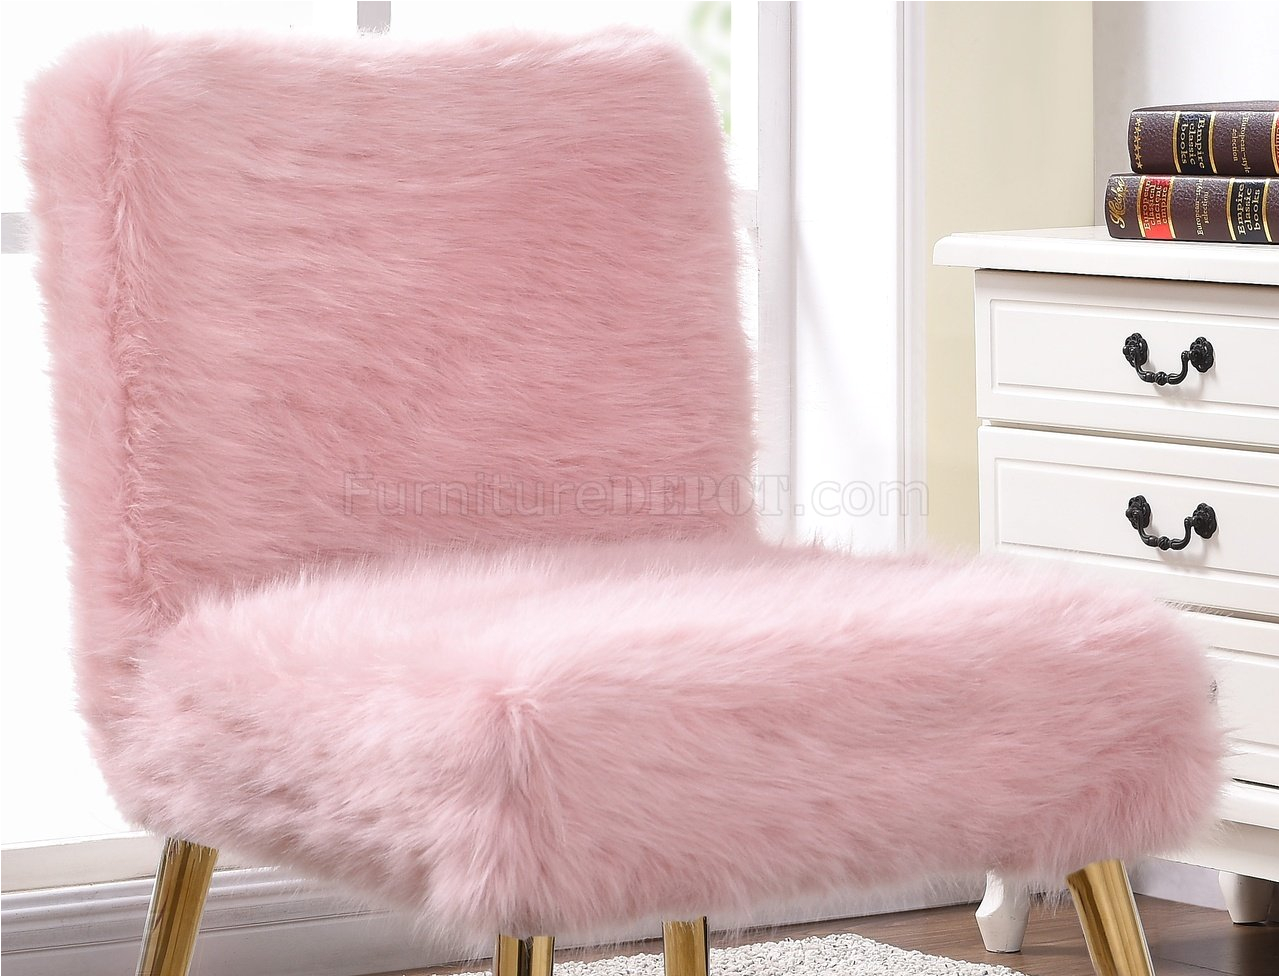 tiffany accent chair in pink fur by meridian p